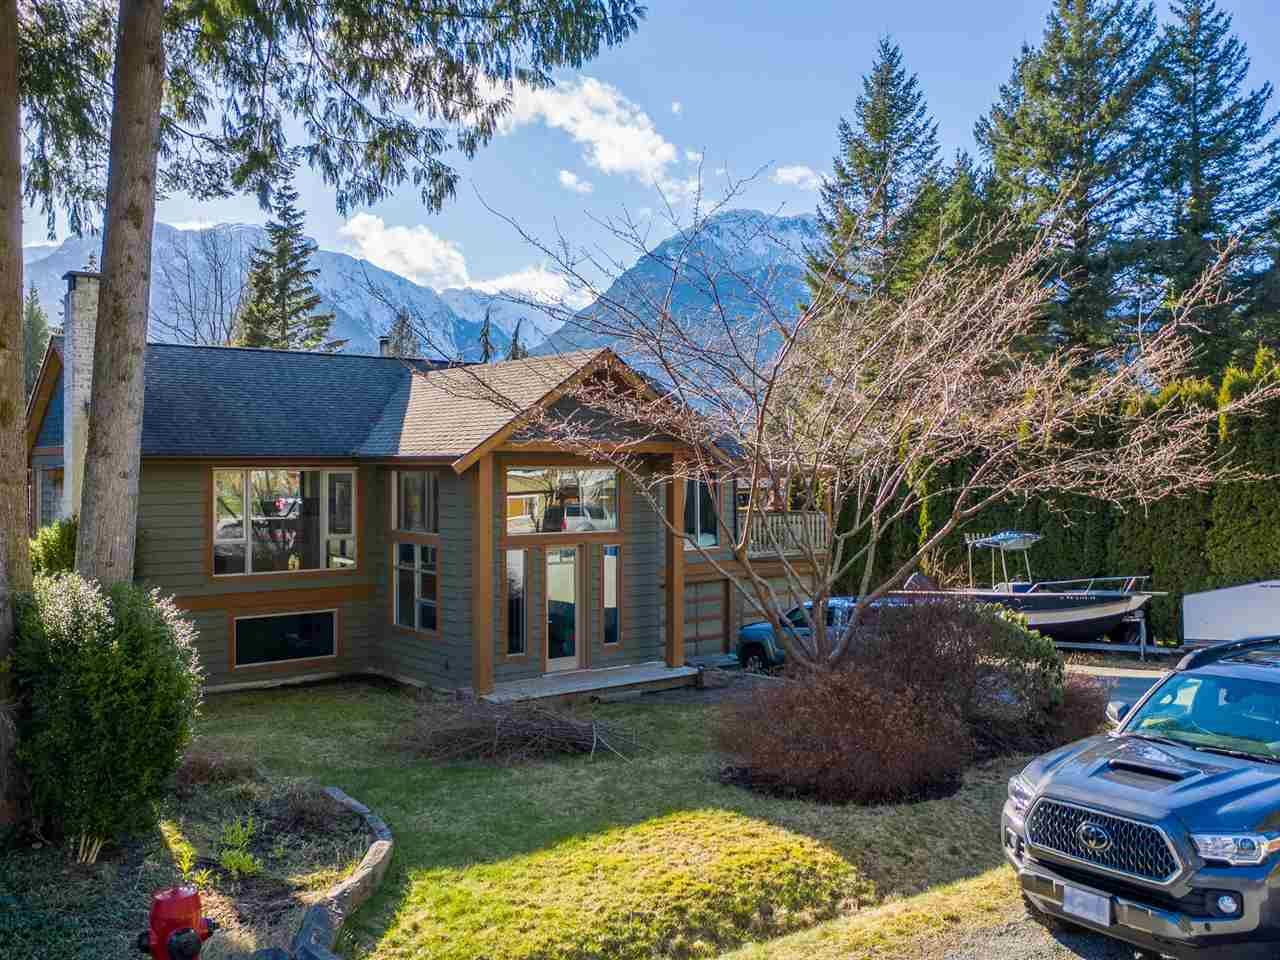 Main Photo: 40435 FRIEDEL Crescent in Squamish: Garibaldi Highlands House for sale : MLS®# R2561568